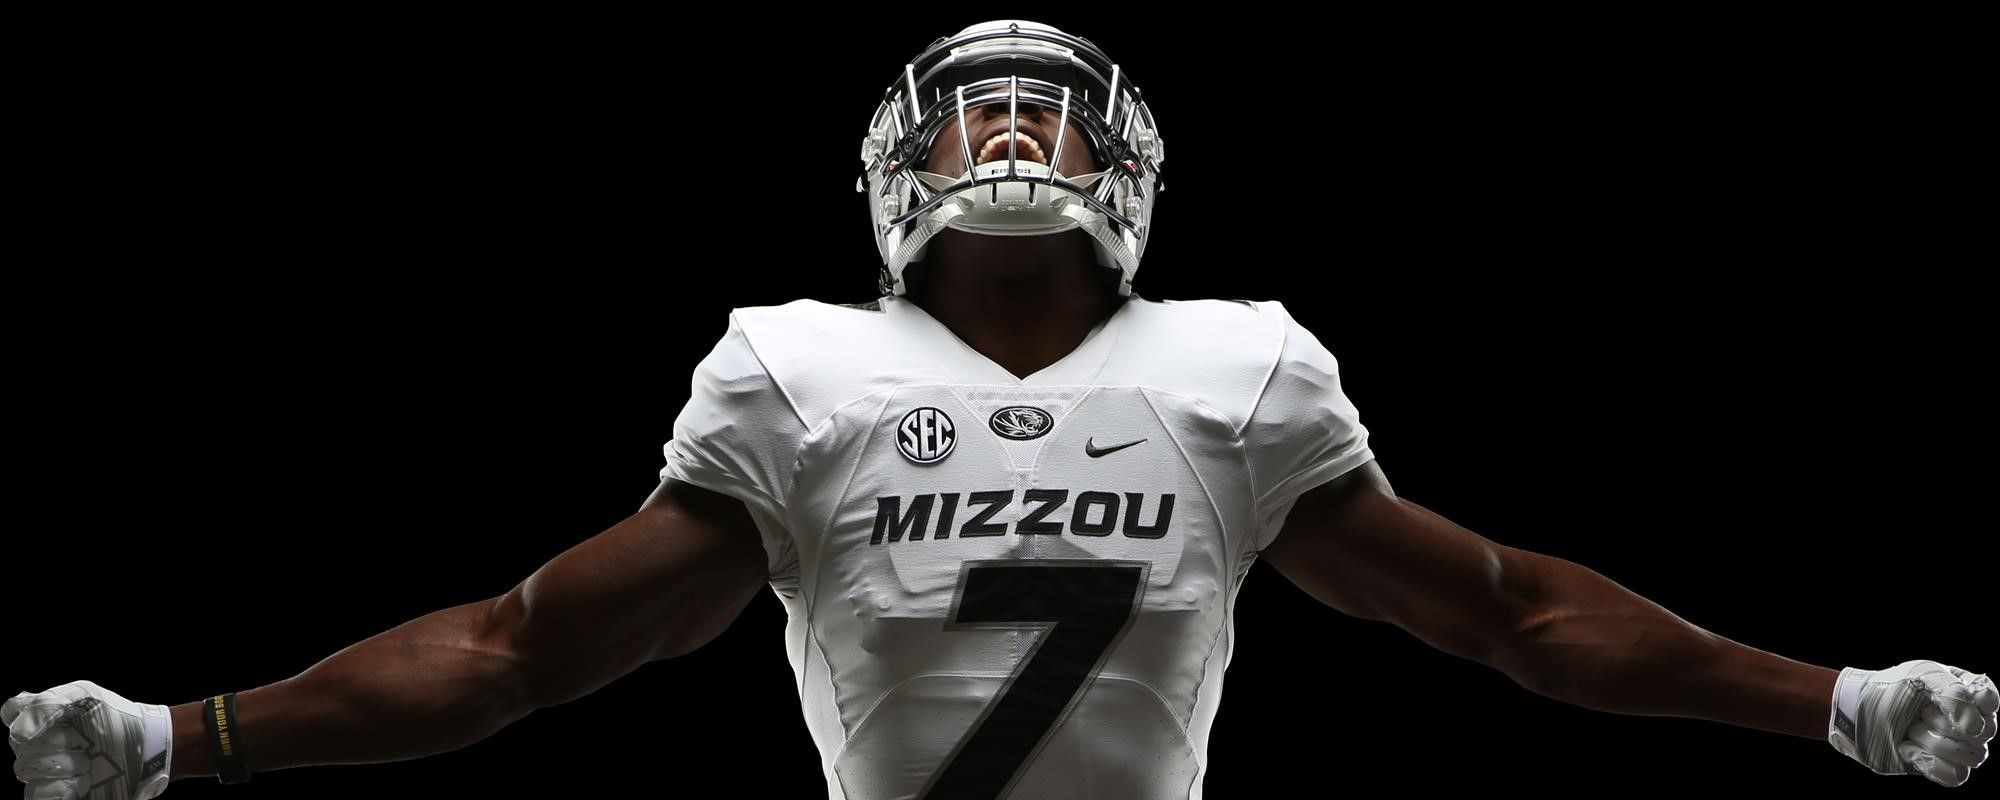 Mizzou Uniform Reveal for Arrowhead Game  c8707dde8